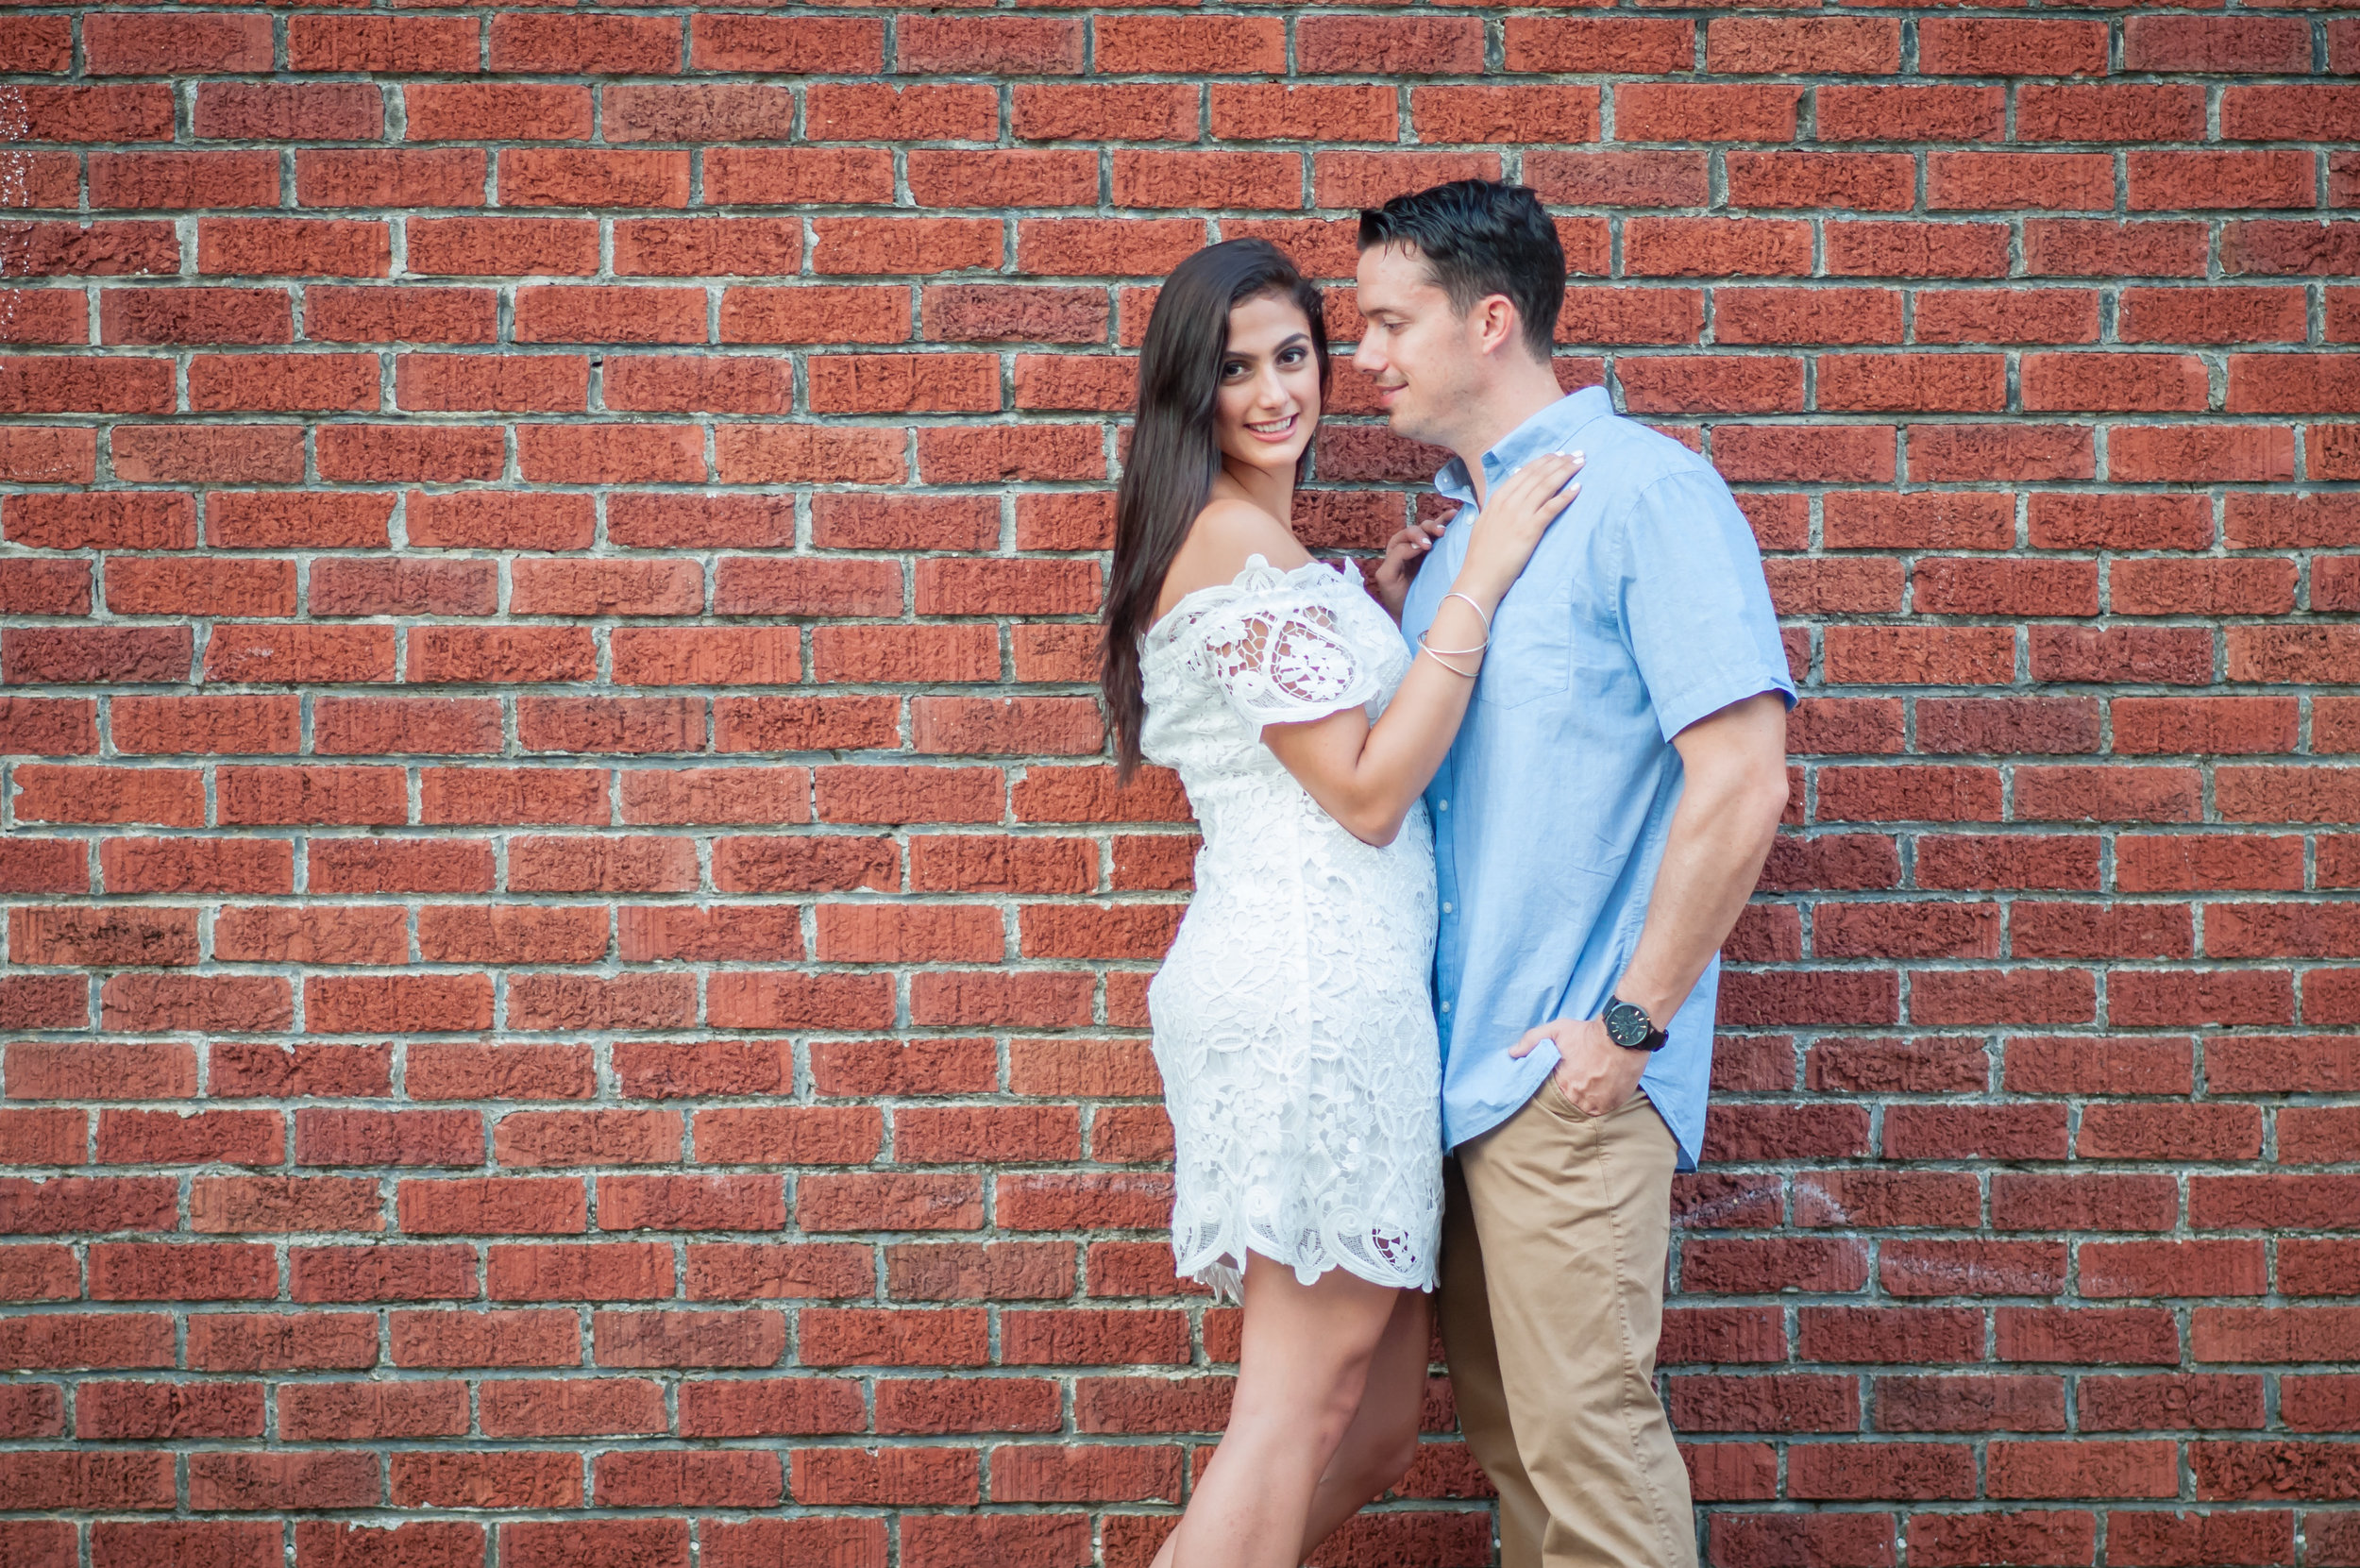 downtown-winter-garden-engagement-session-1-3.jpg